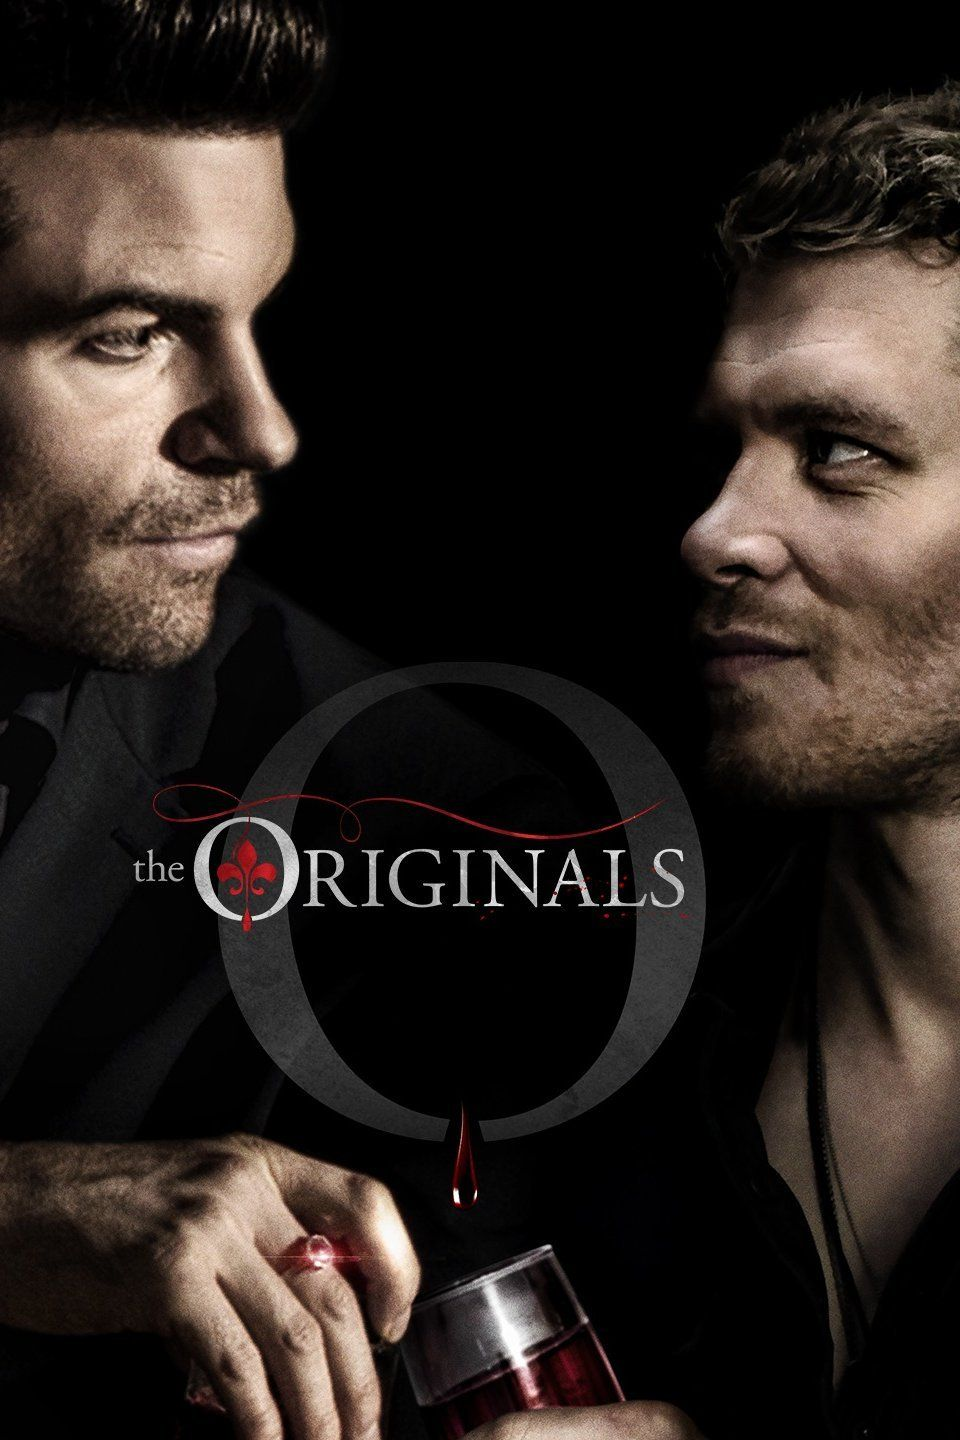 The Originals Season 5 Subtitles Tv Series To Watch Streaming Tv Shows Netflix Shows To Watch